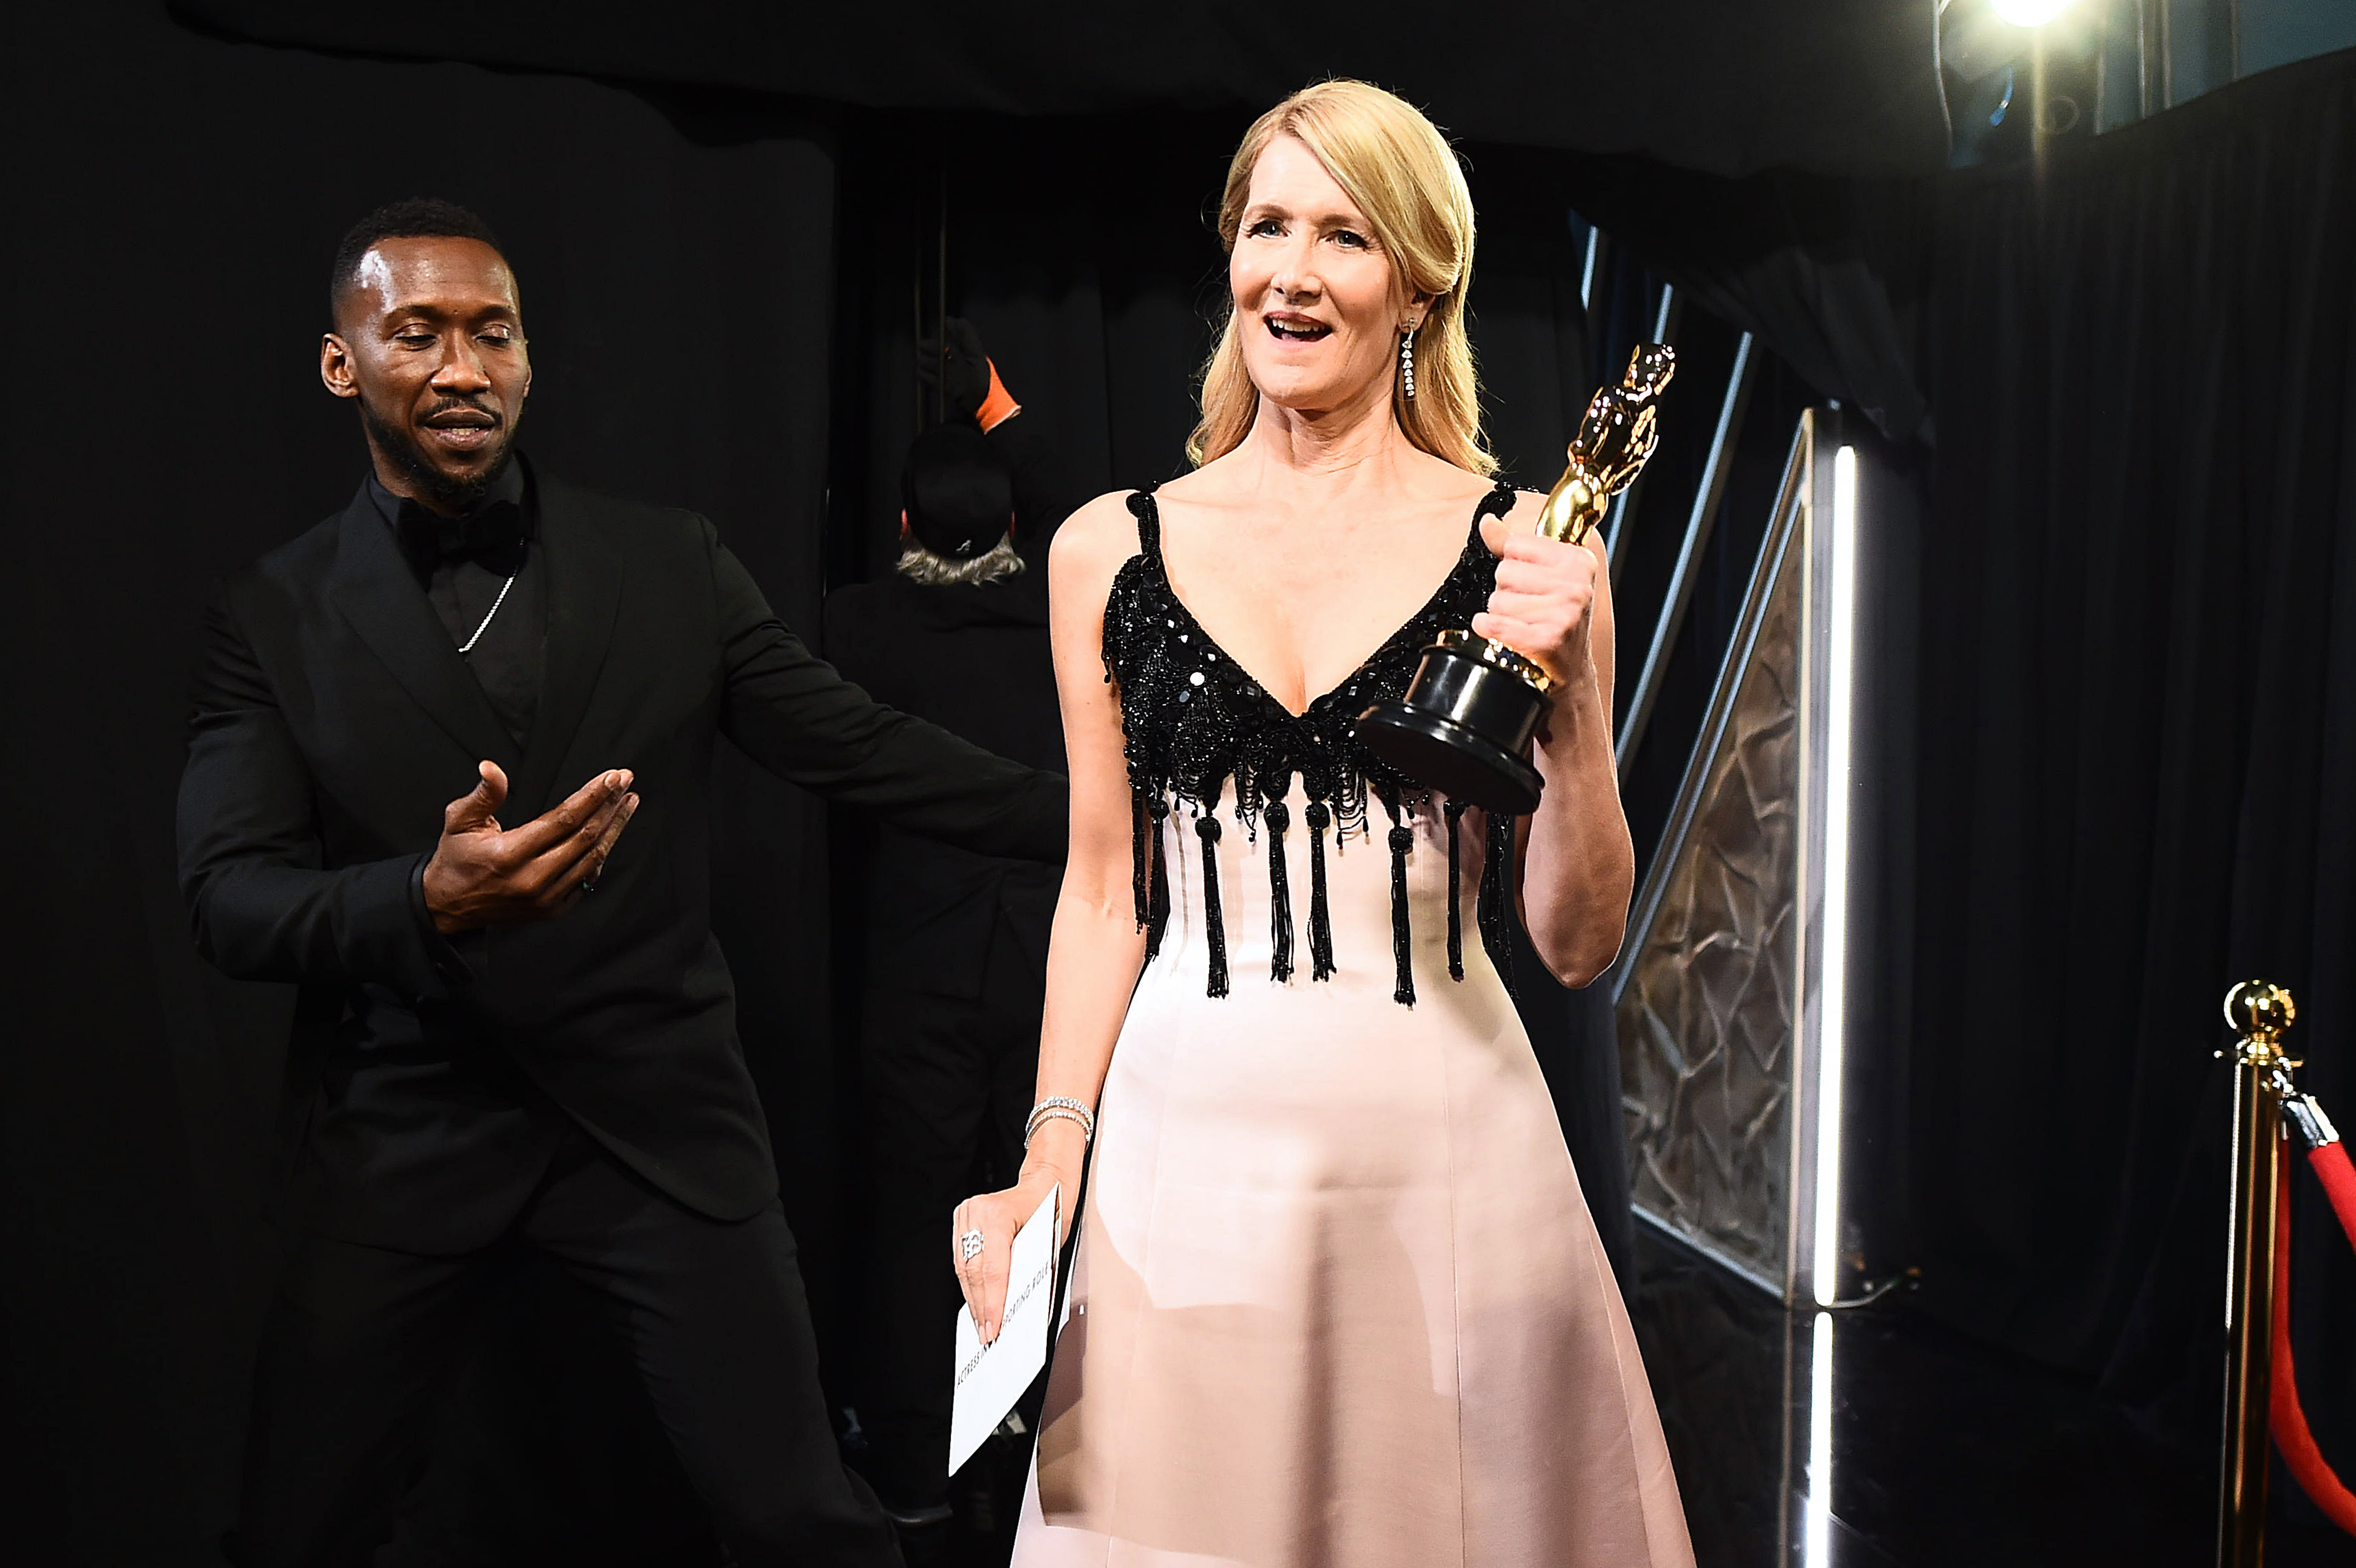 Laura Dern and Mahershala Ali at an event for The Oscars (2020)